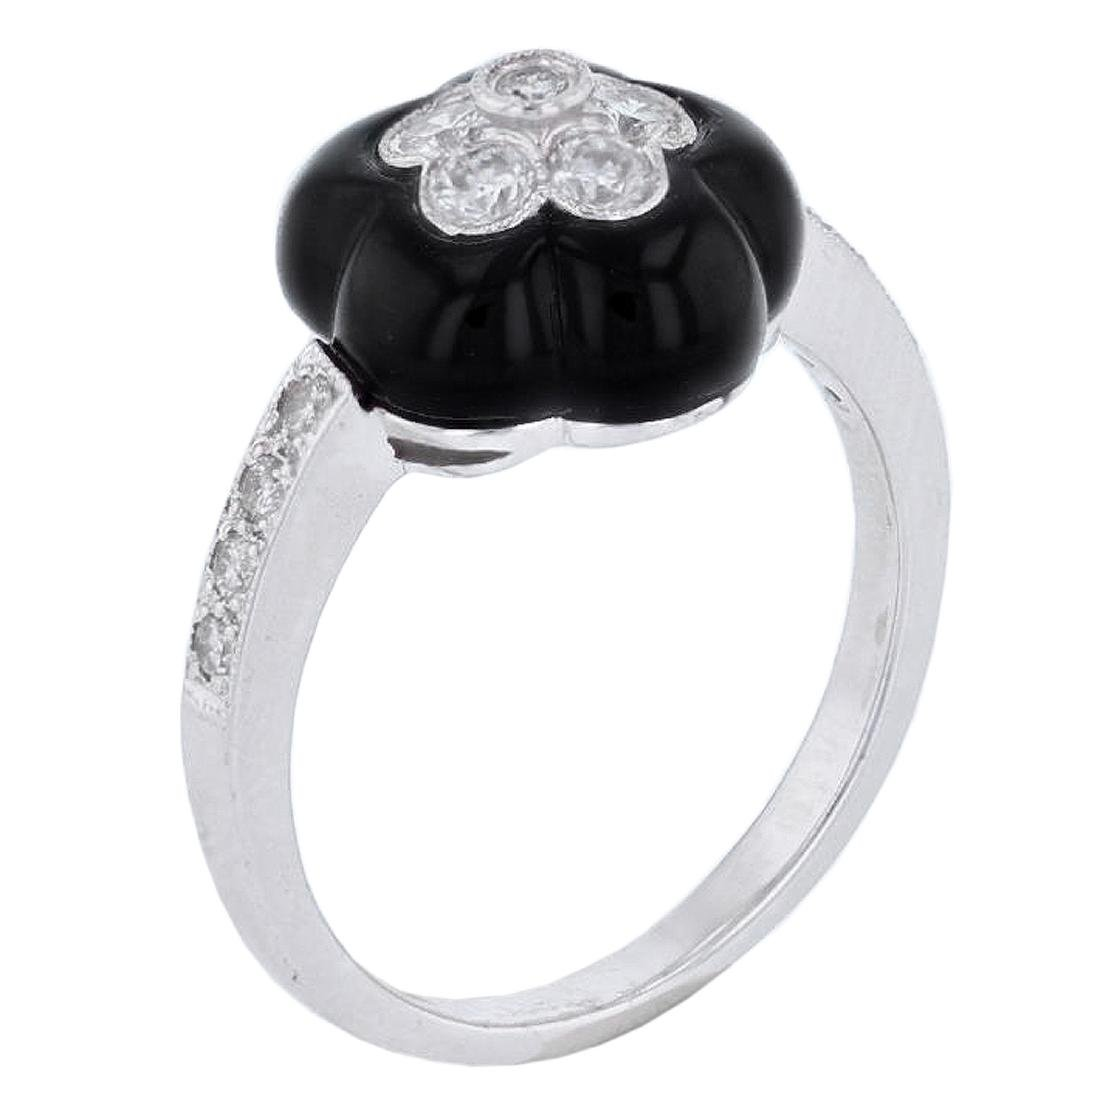 18KT White Gold Onyx and Diamond Ring - 3